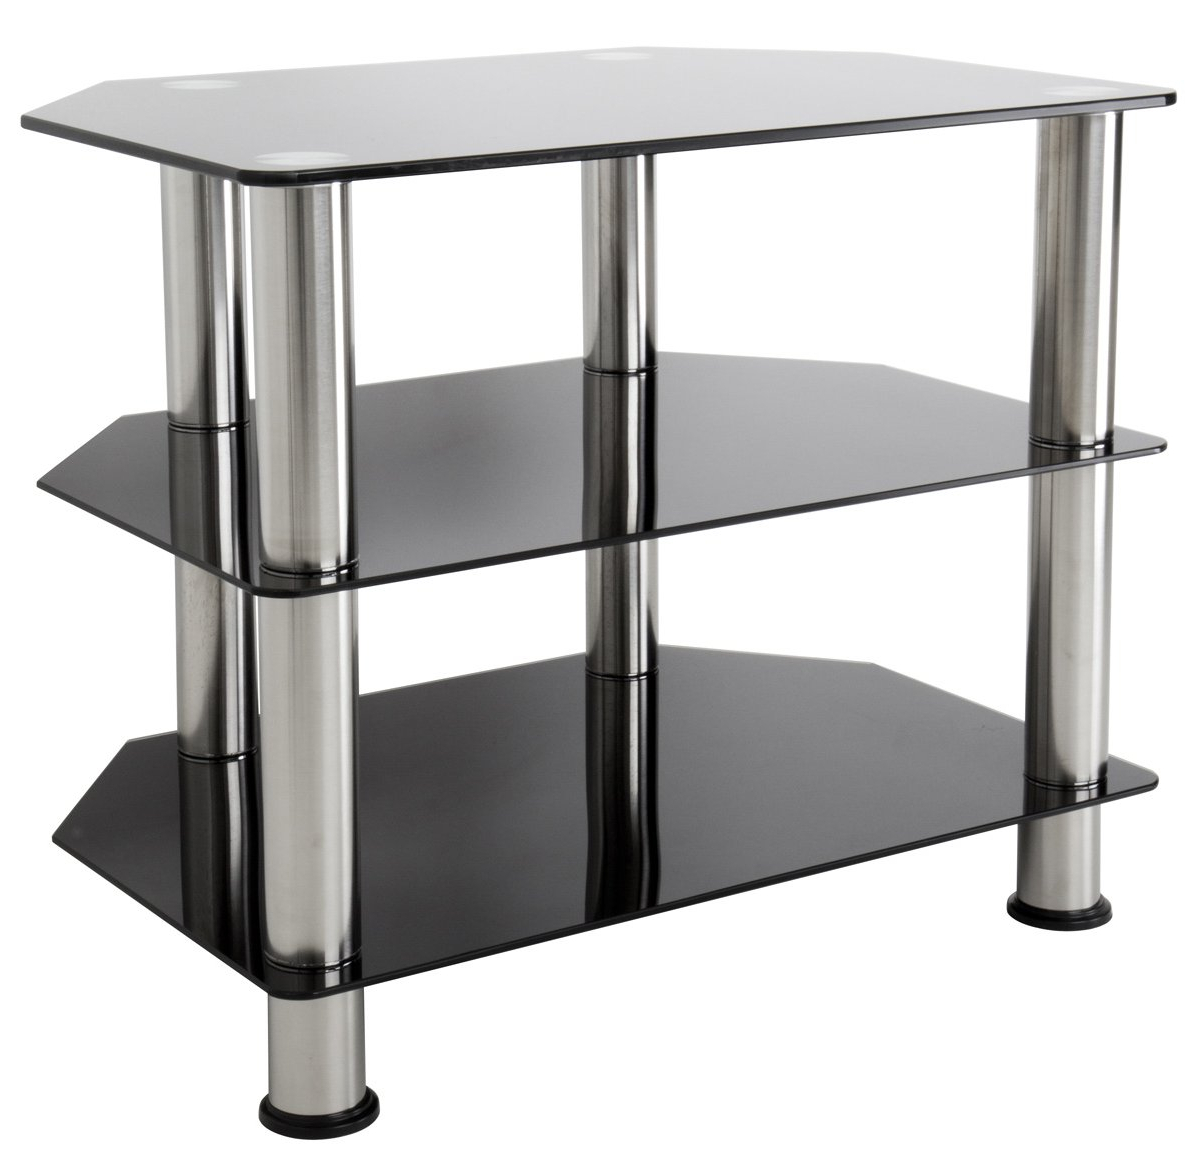 Avf Sdc600 Tv Stands Pertaining To Well Known 32 Inch Tv Stands (Gallery 18 of 20)